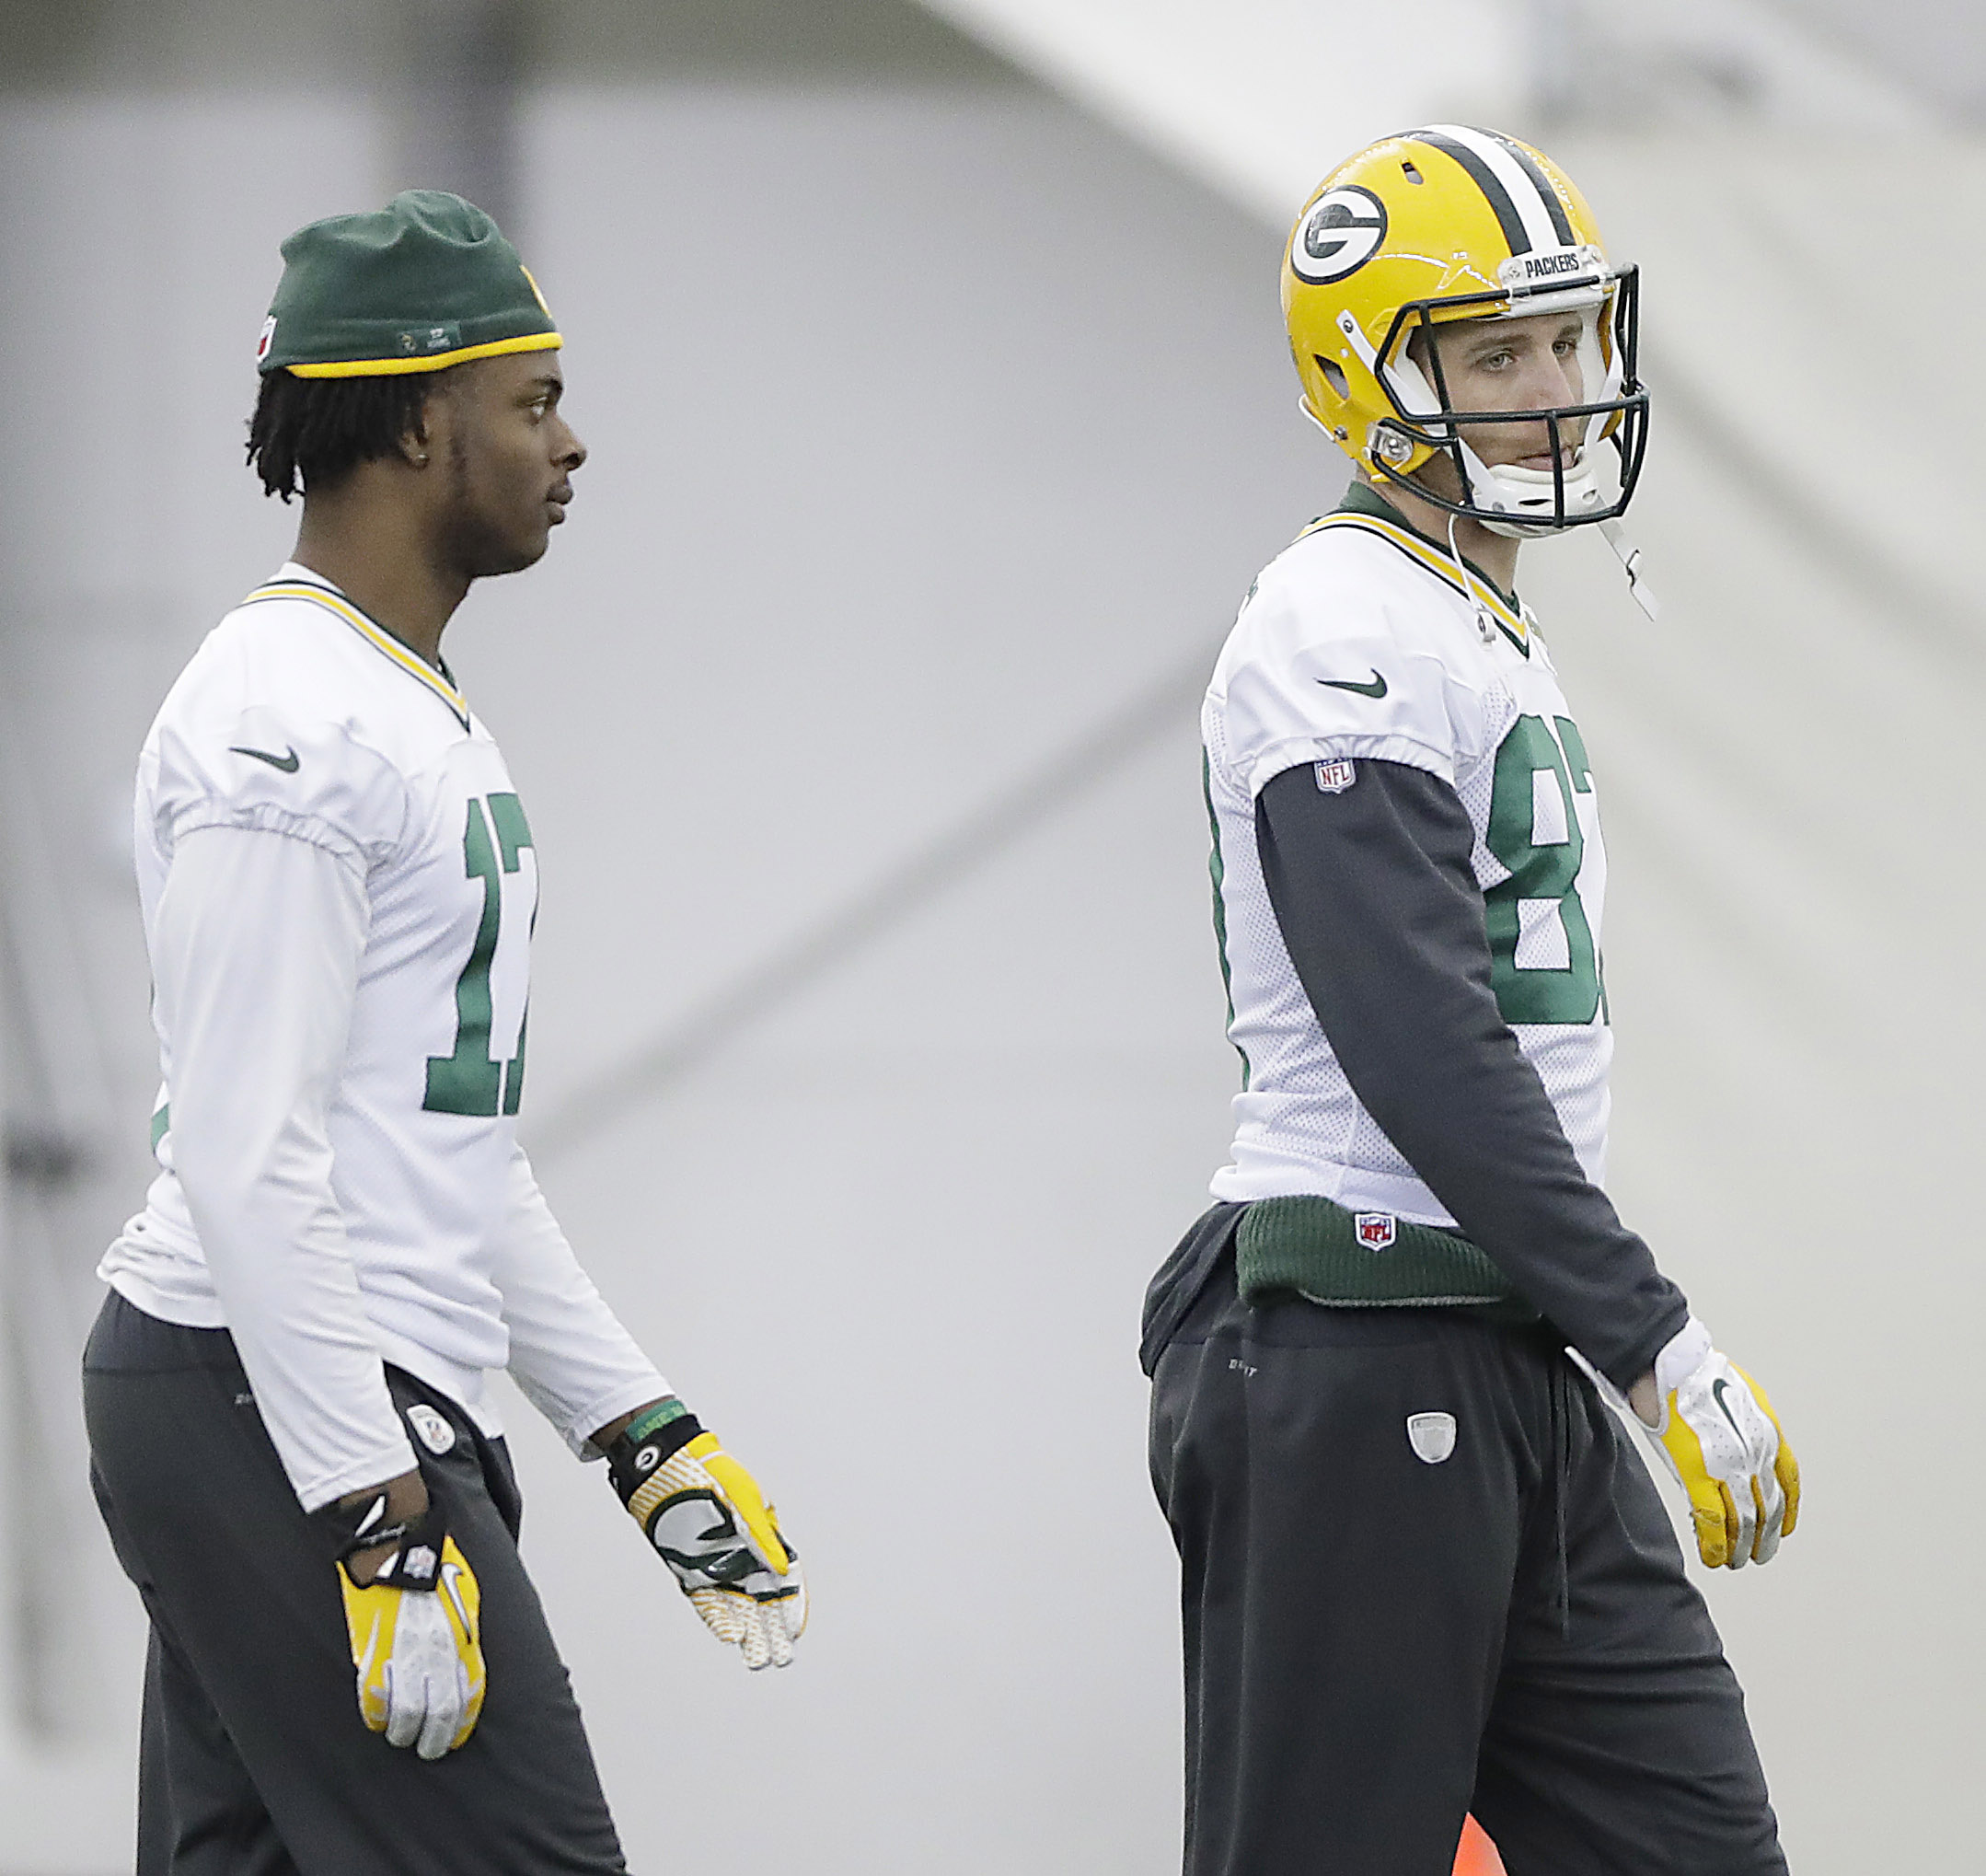 9821954-nfl-green-bay-packers-practice